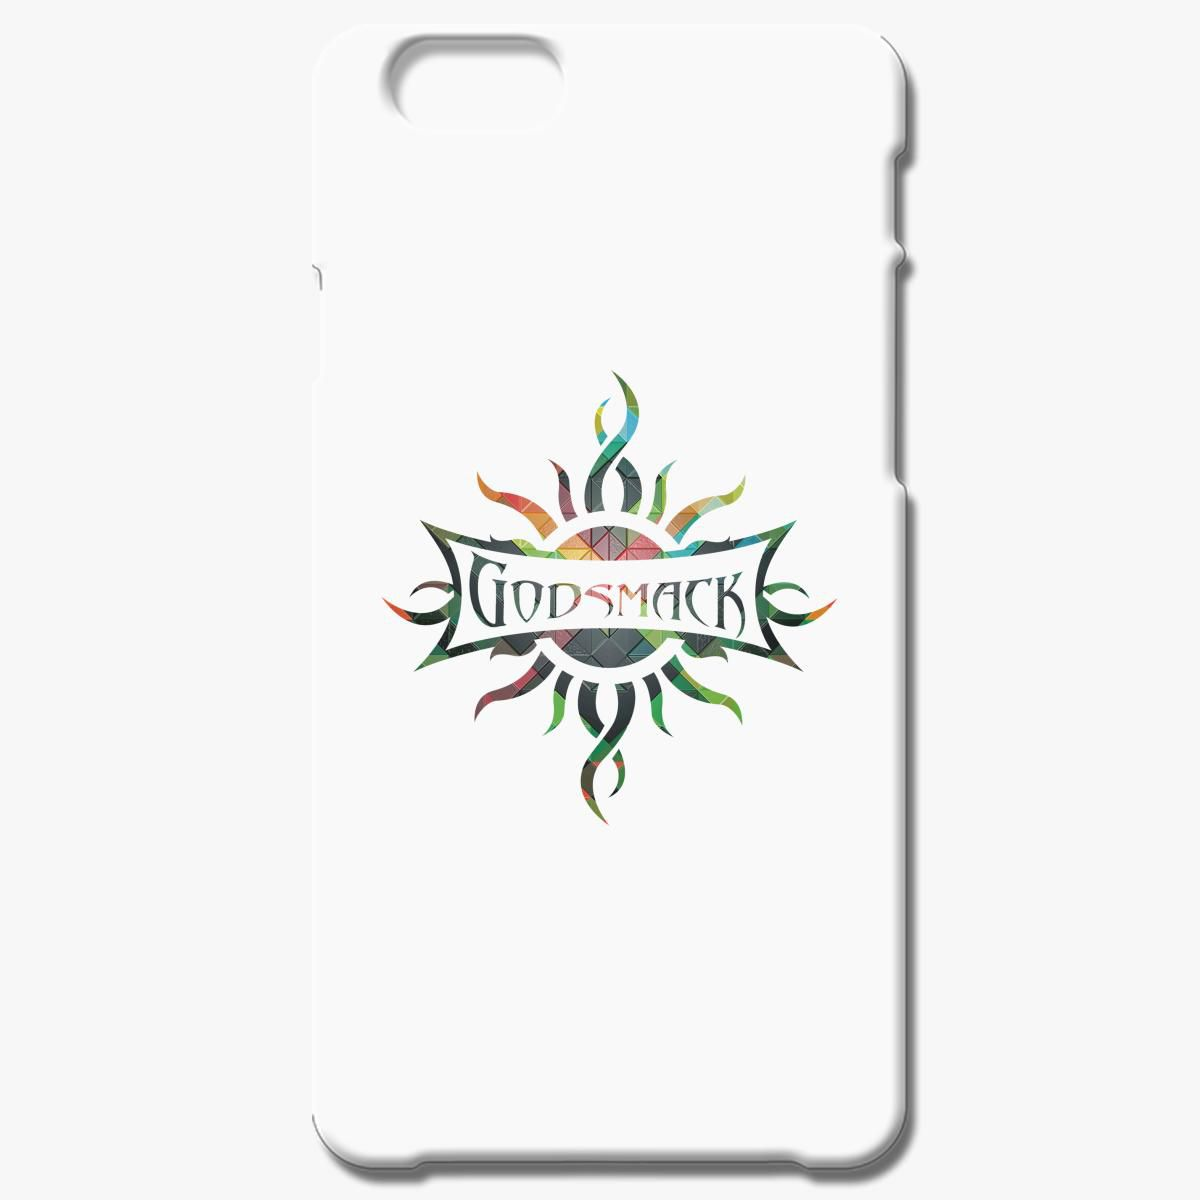 Godsmack Iphone 6 6s Case